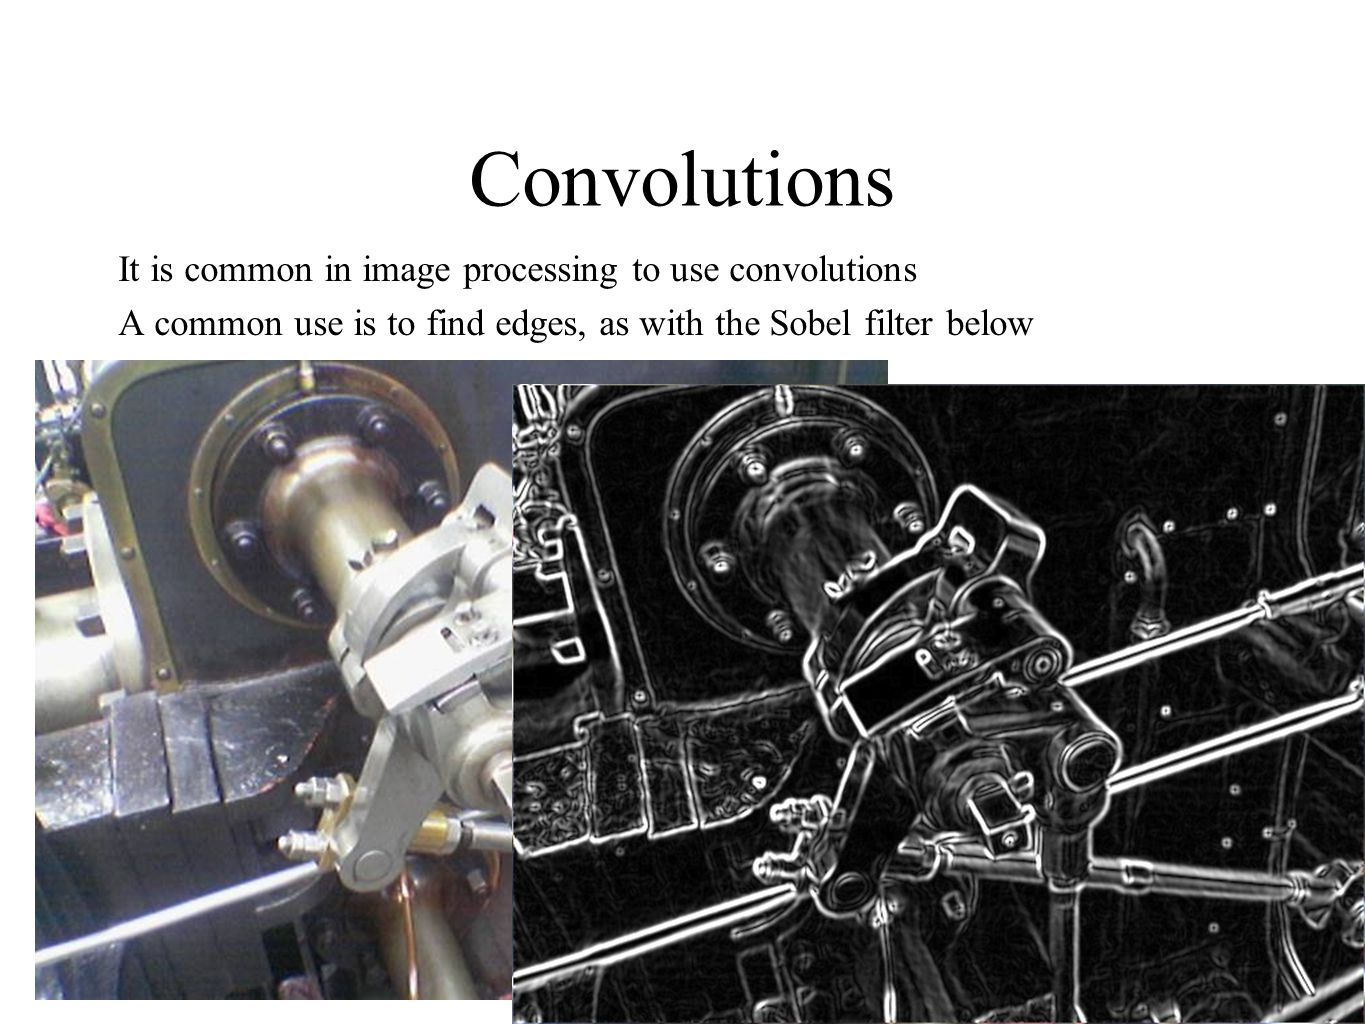 Convolutions It is common in image processing to use convolutions A common use is to find edges, as with the Sobel filter below